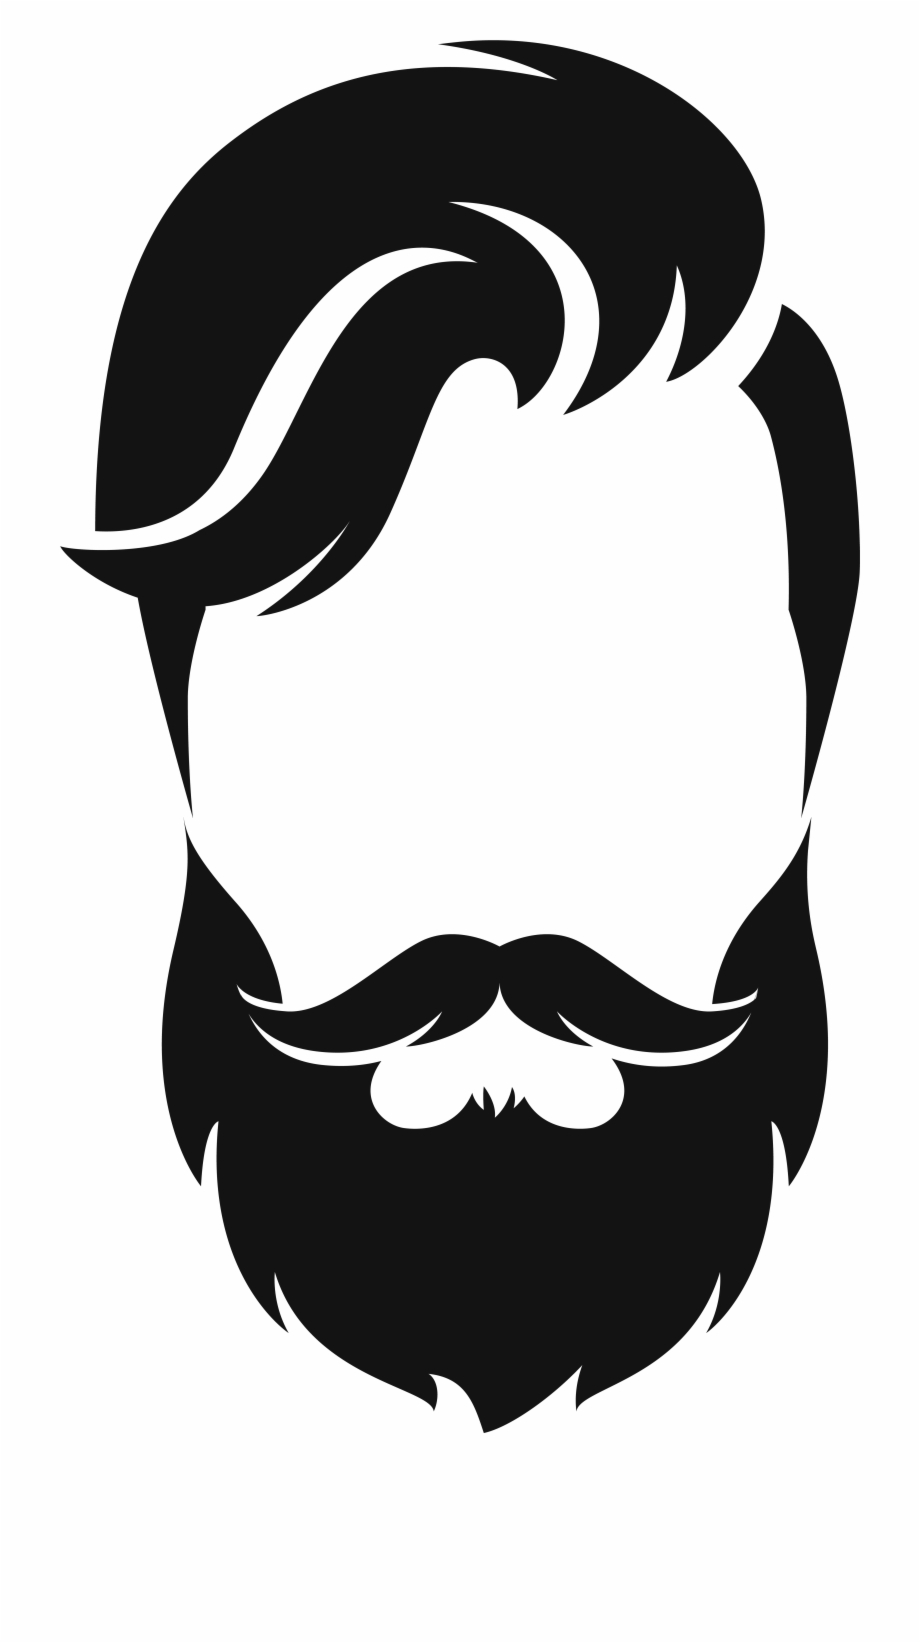 Beard Silhouette Png.